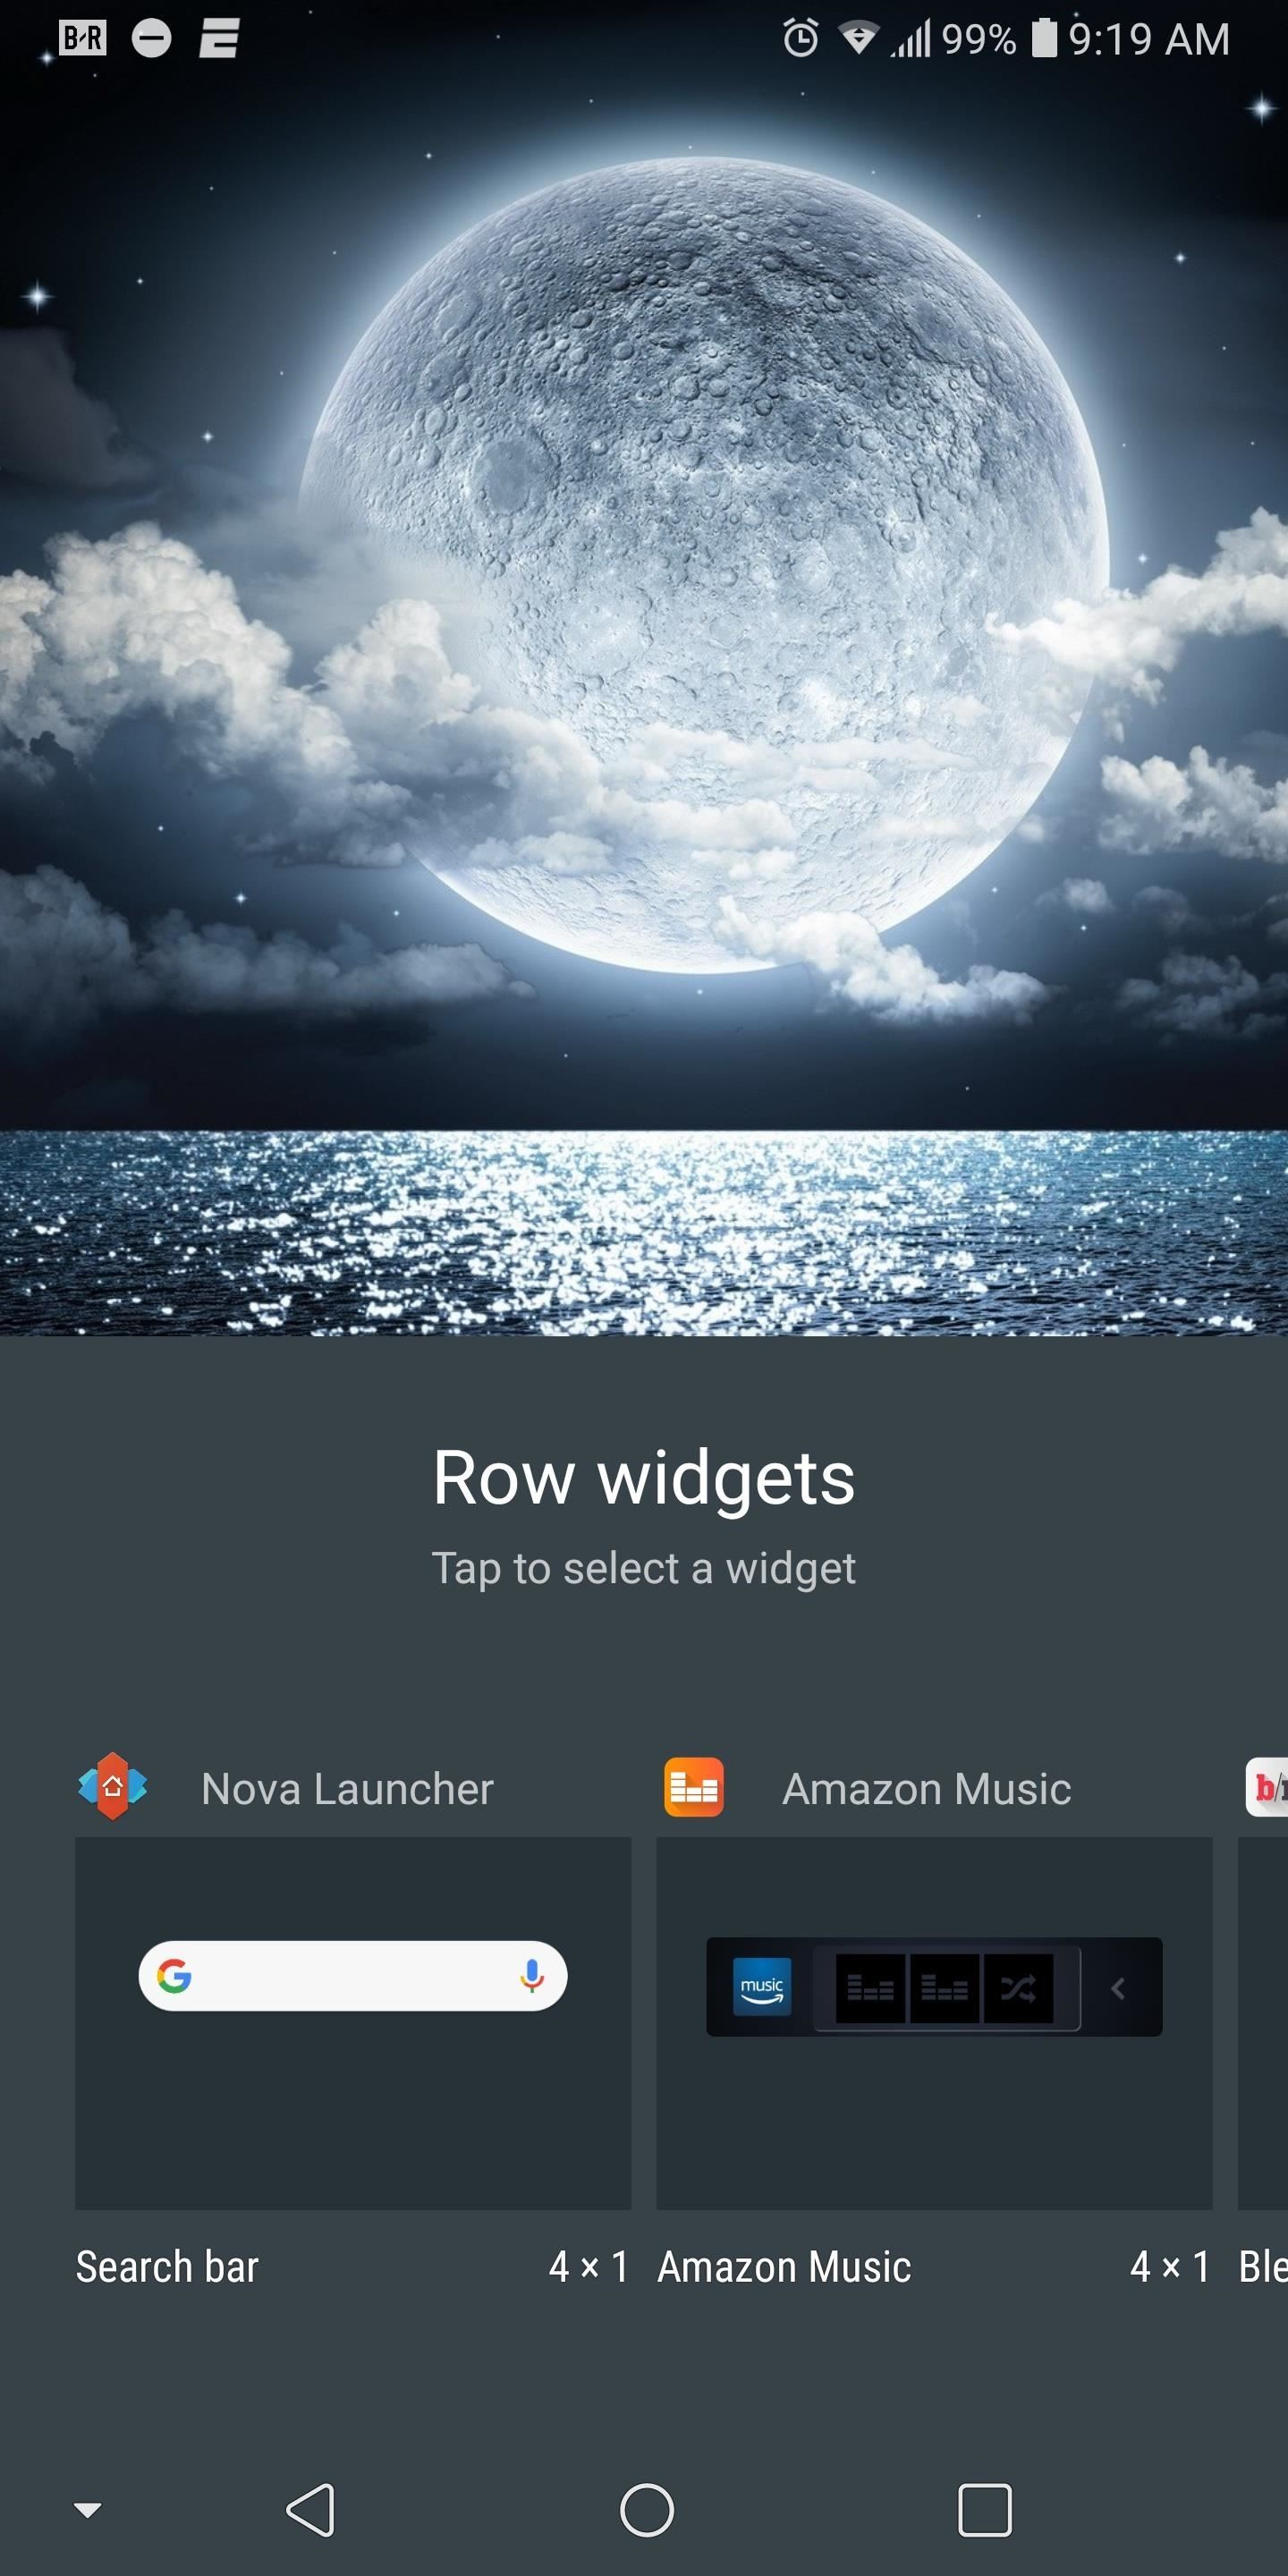 Nova Launcher 101: How to Add Any Widget to Android Oreo's Expanded Dock